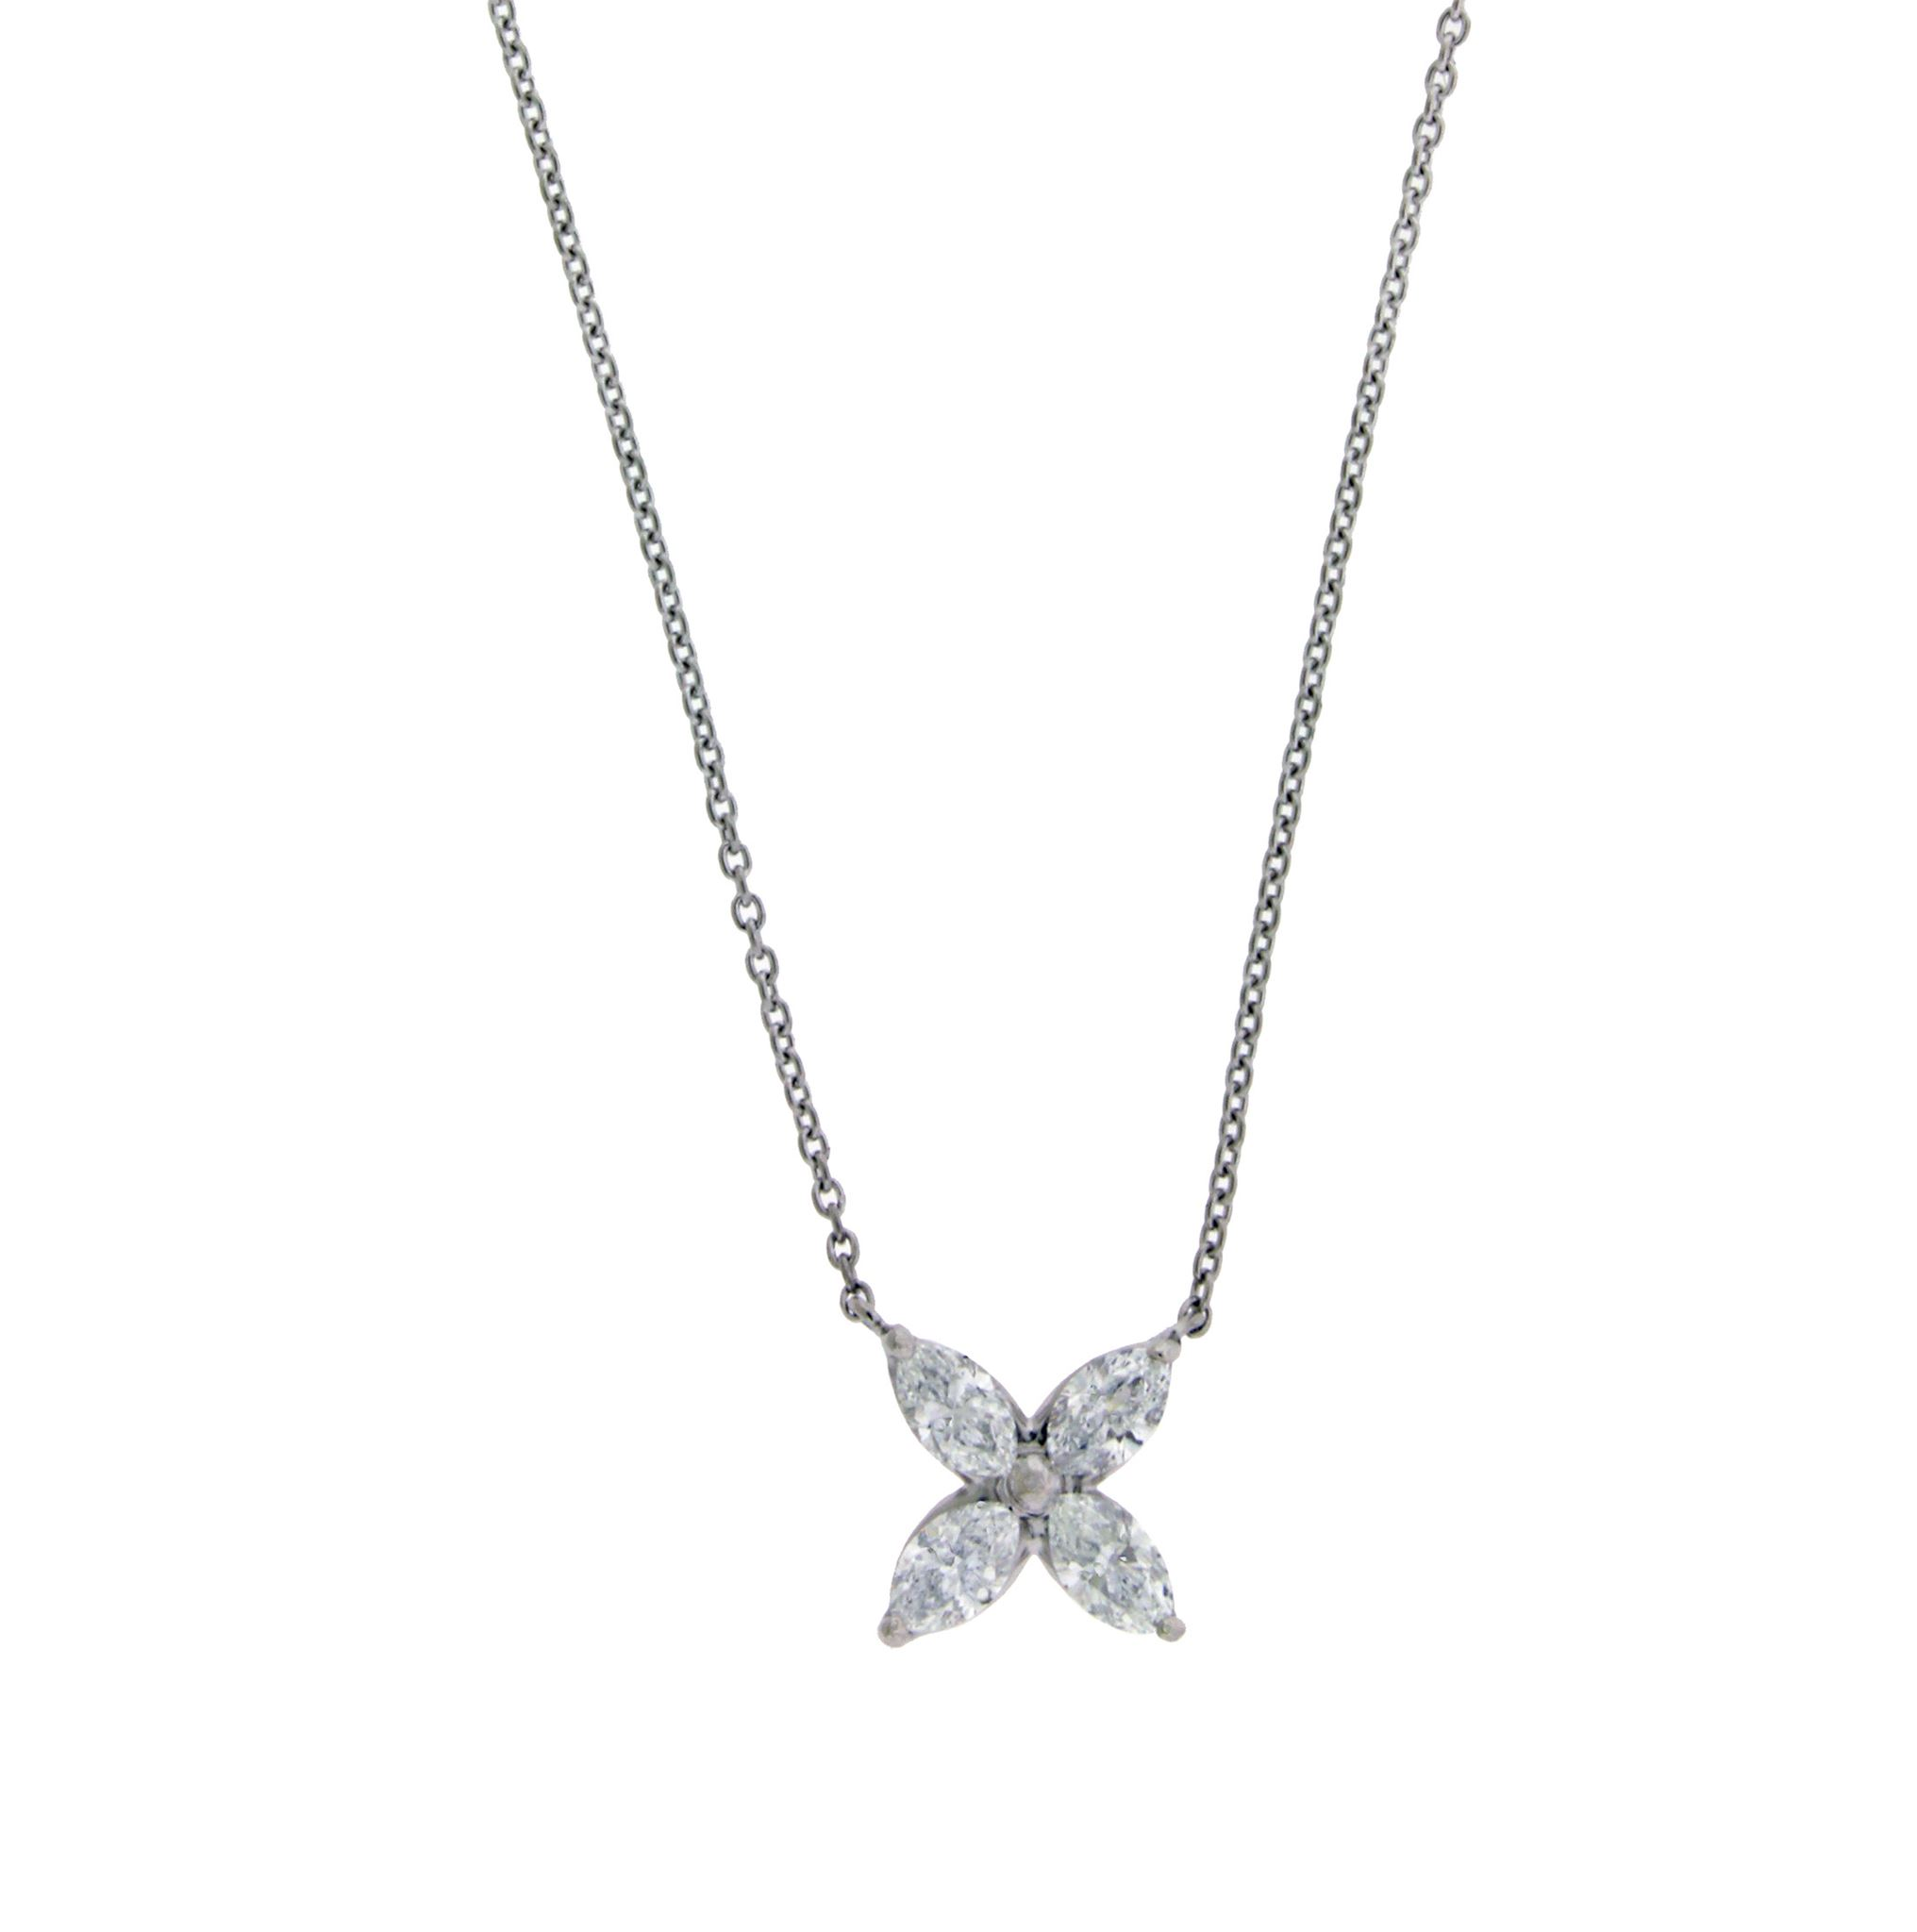 set necklace white diamond to carat gold kaystore zoom zm mv hover kay en bezel